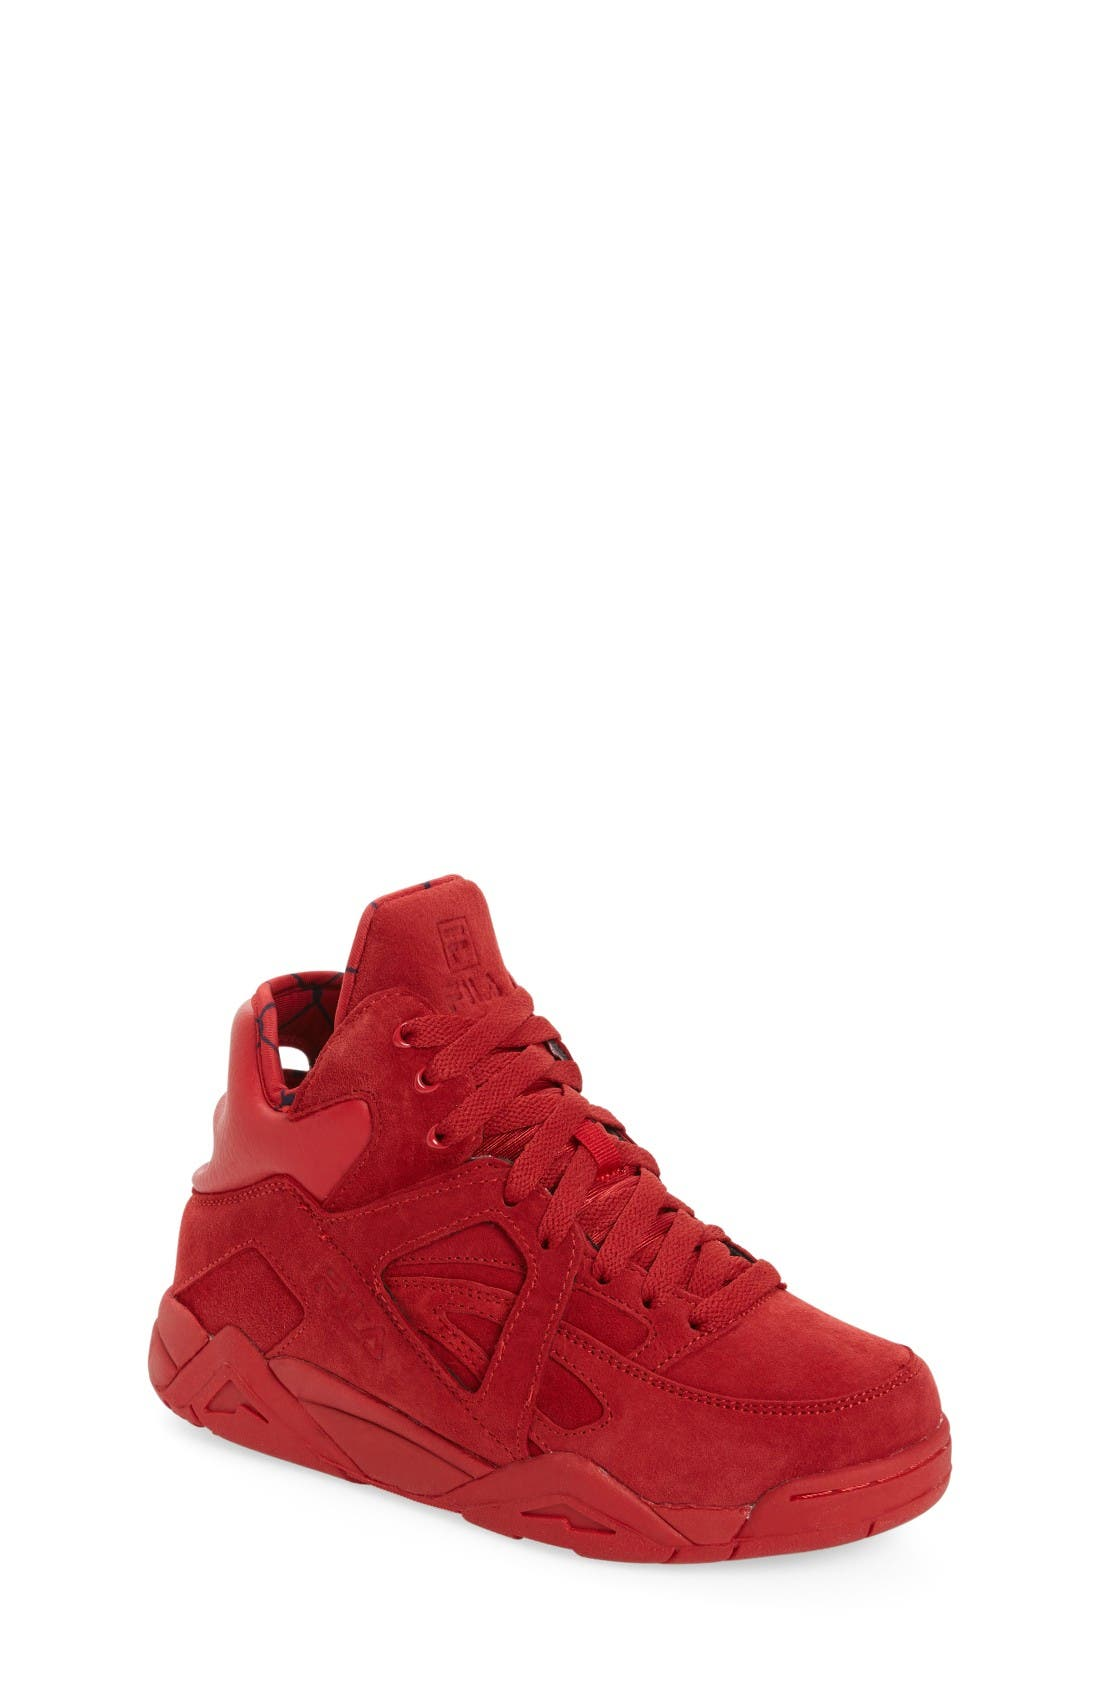 The Cage High Top Sneaker,                         Main,                         color, Red Suede